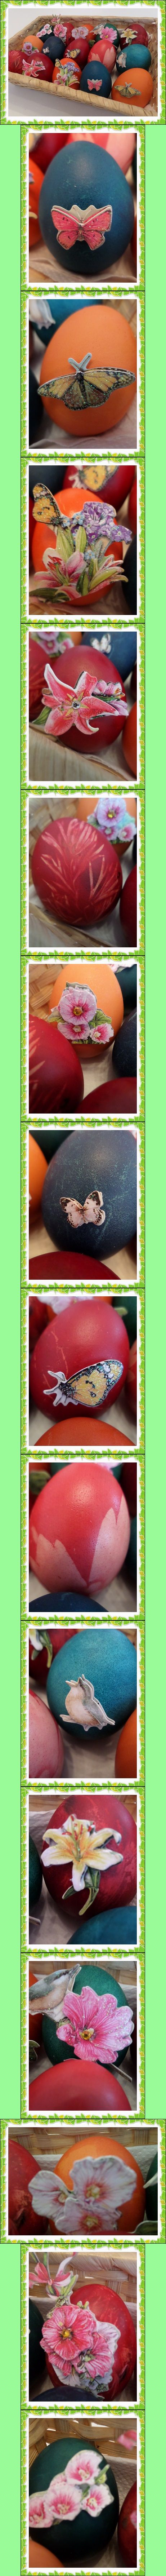 #DIY #EASTER #EGGS